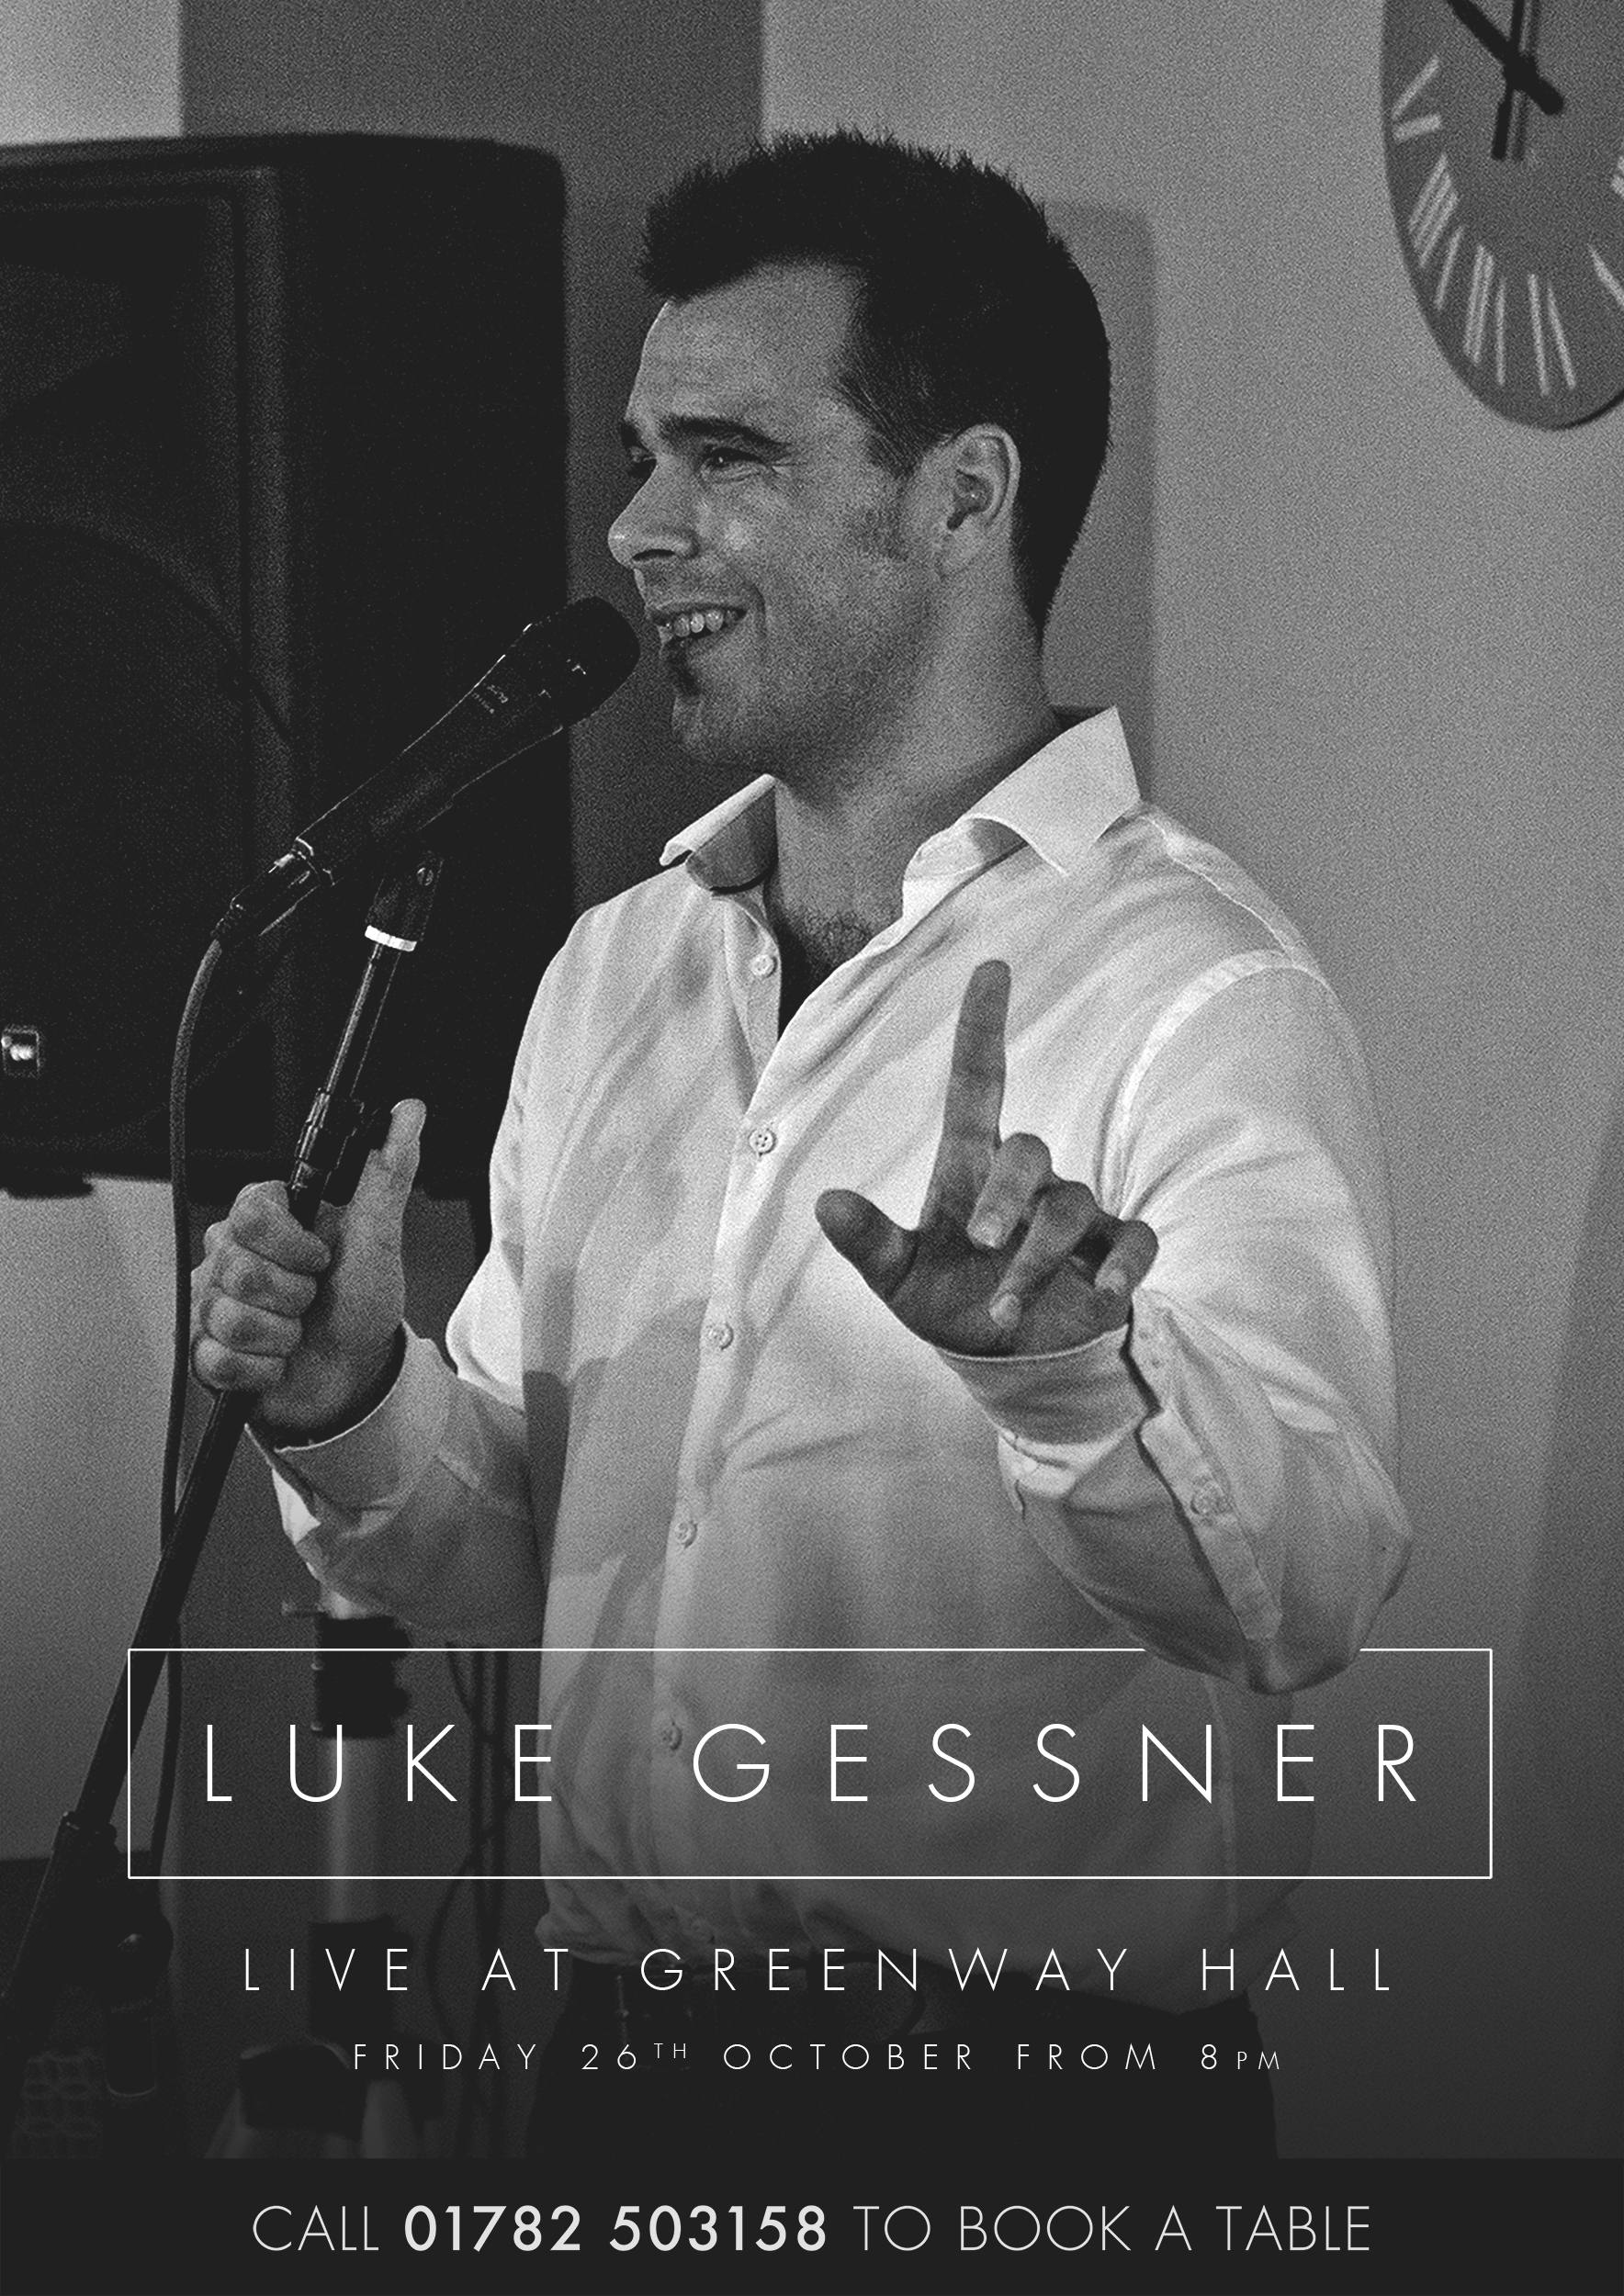 Luke Gessner live at Greenway Hall on Friday 26th October to book at table call 01782-503158